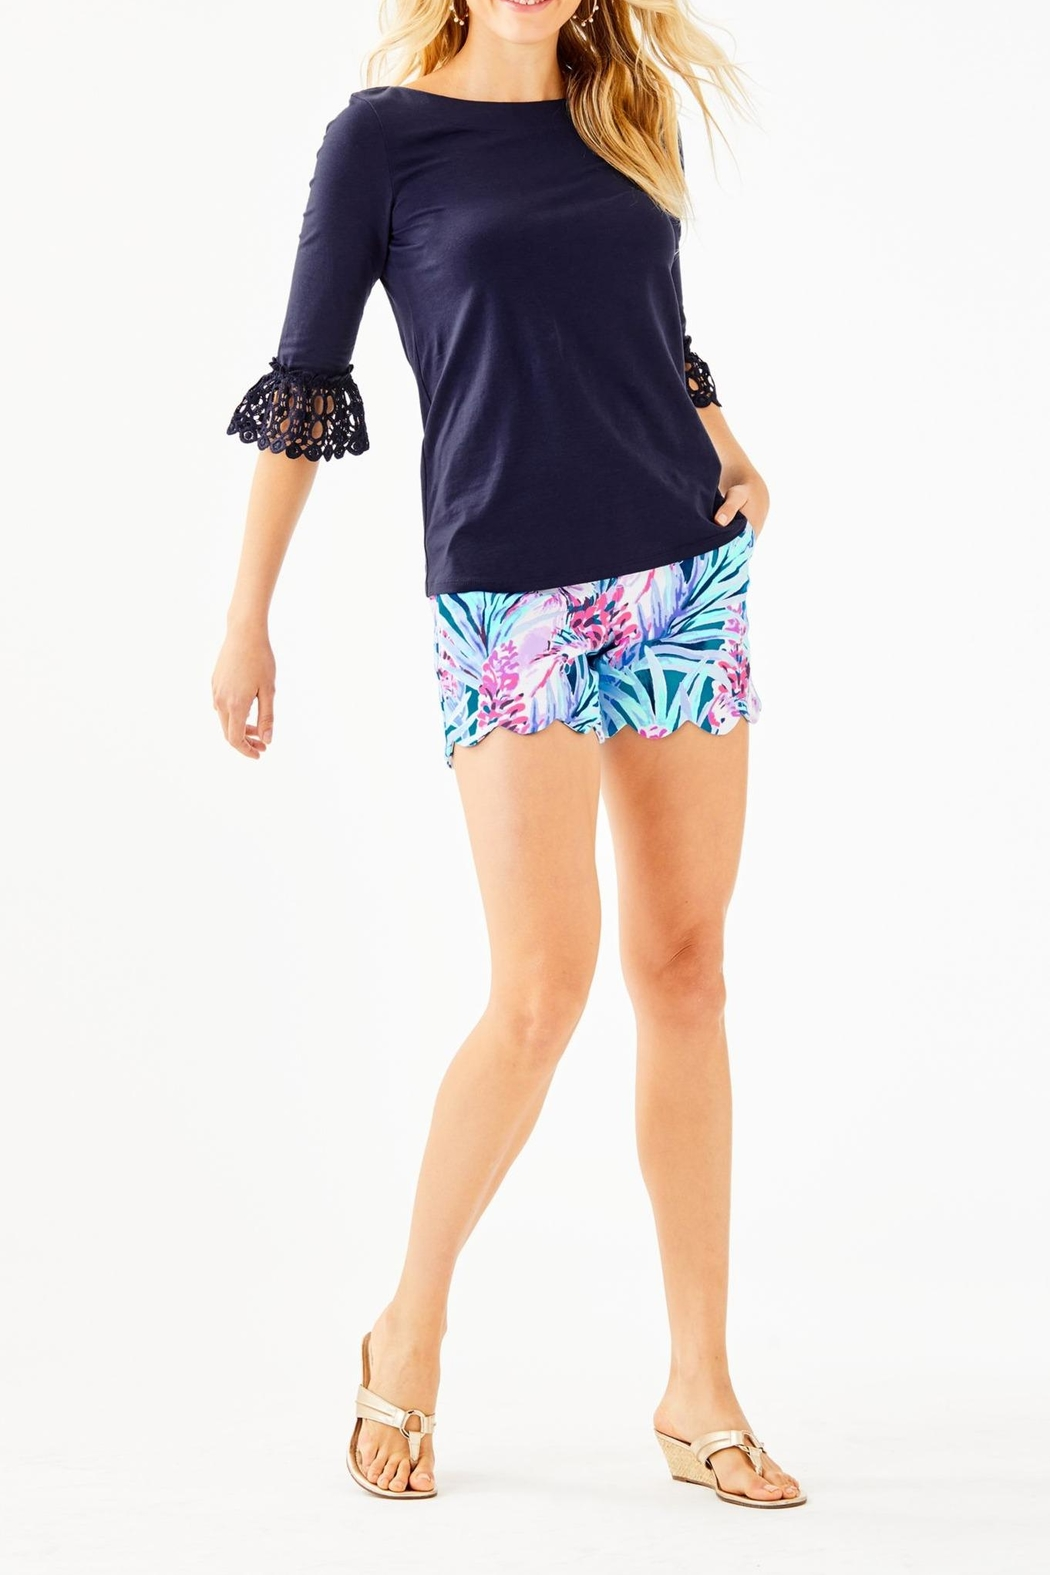 Lilly Pulitzer Waverly Top - Side Cropped Image